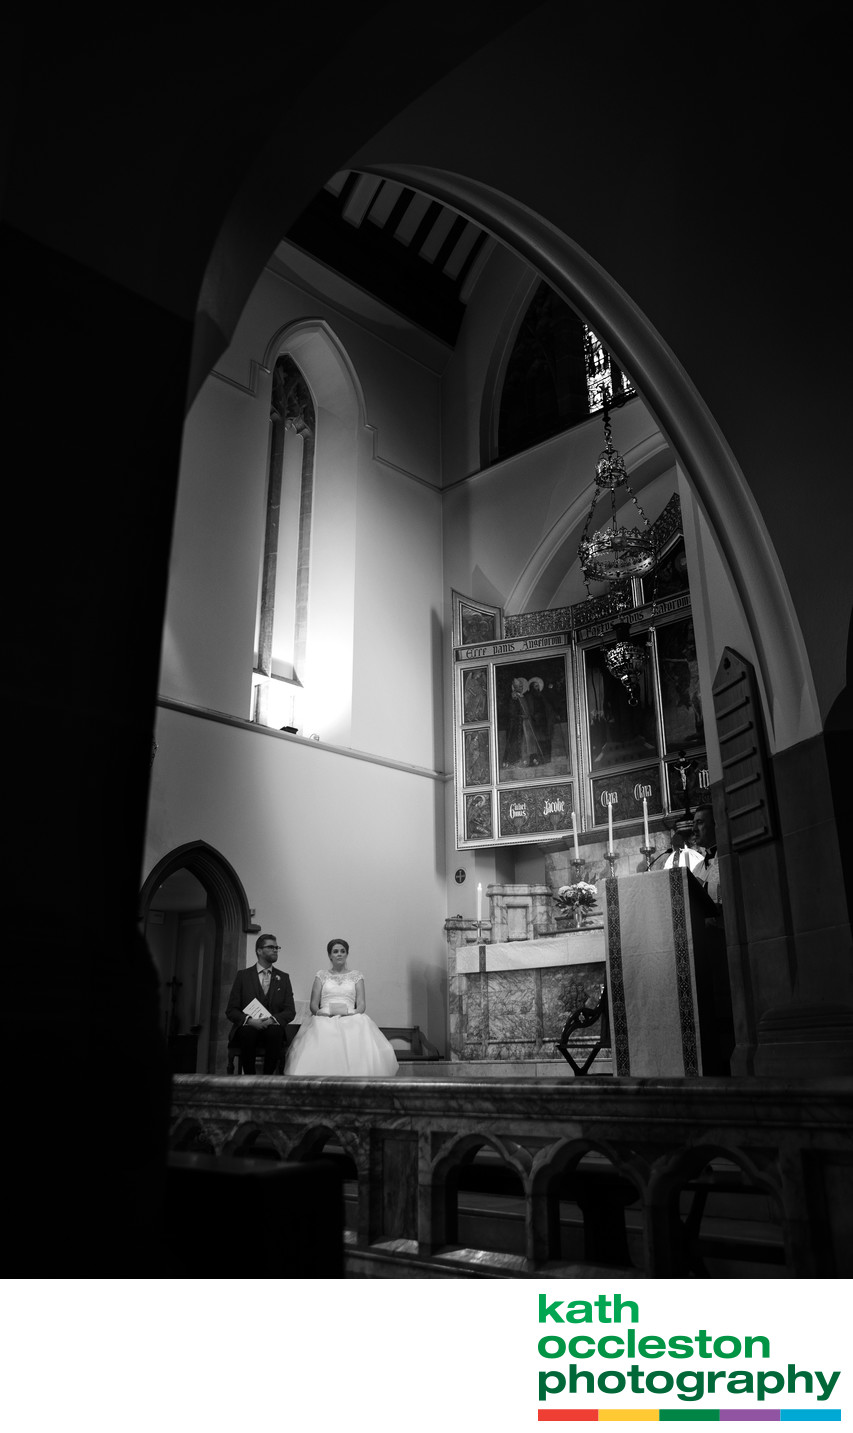 Bride & Groom in the Church